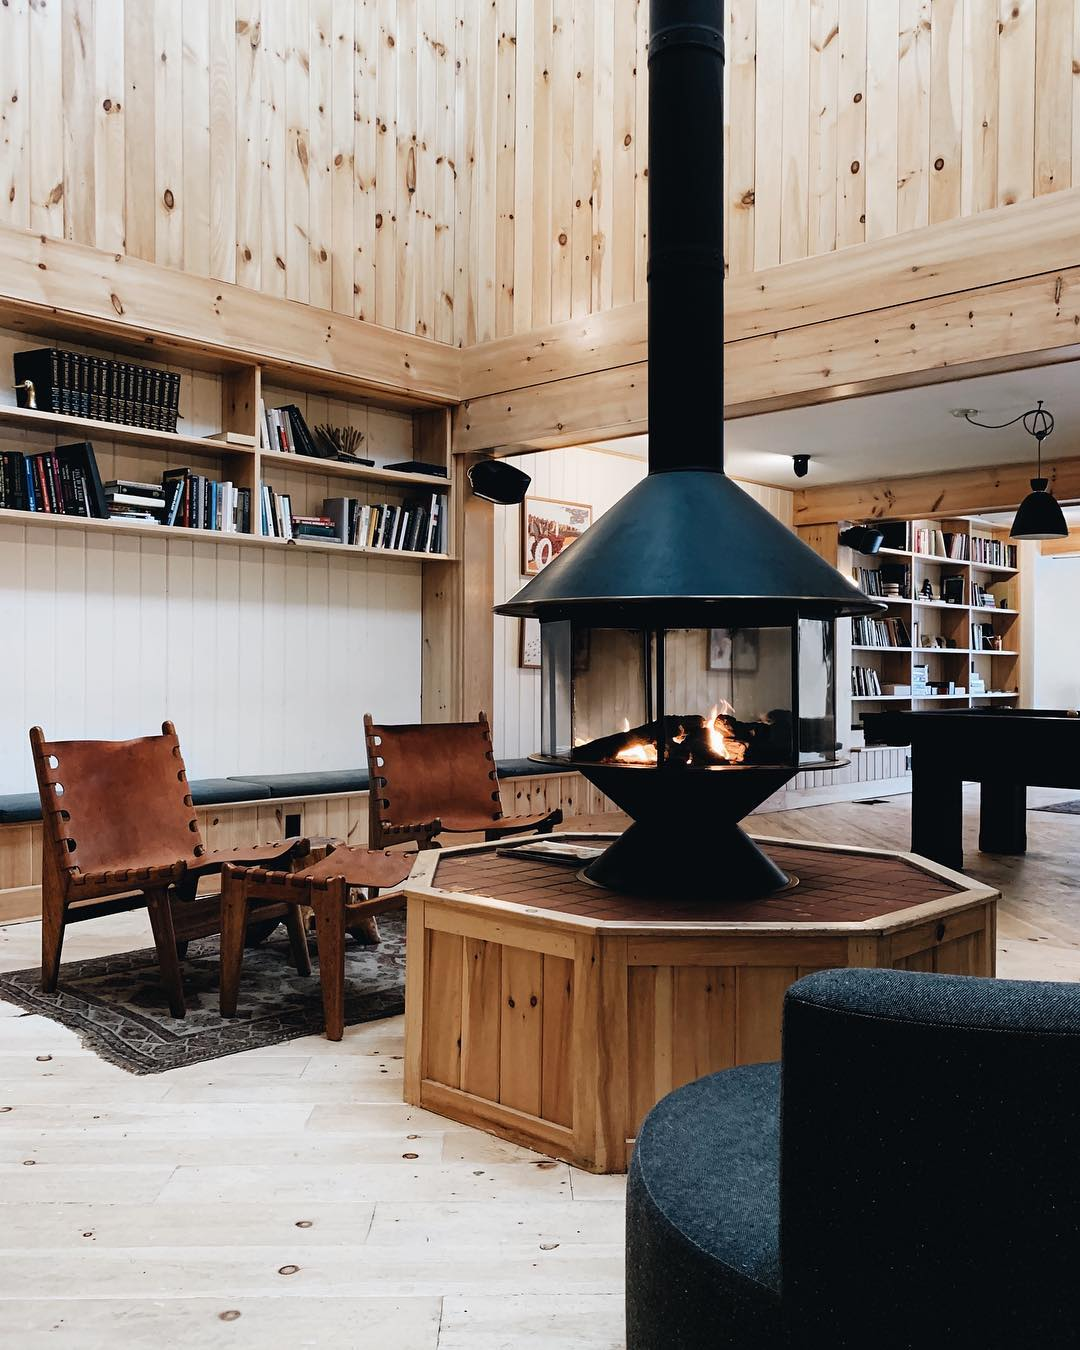 Modern Cabin Vibes in Upstate New York on apartment 34